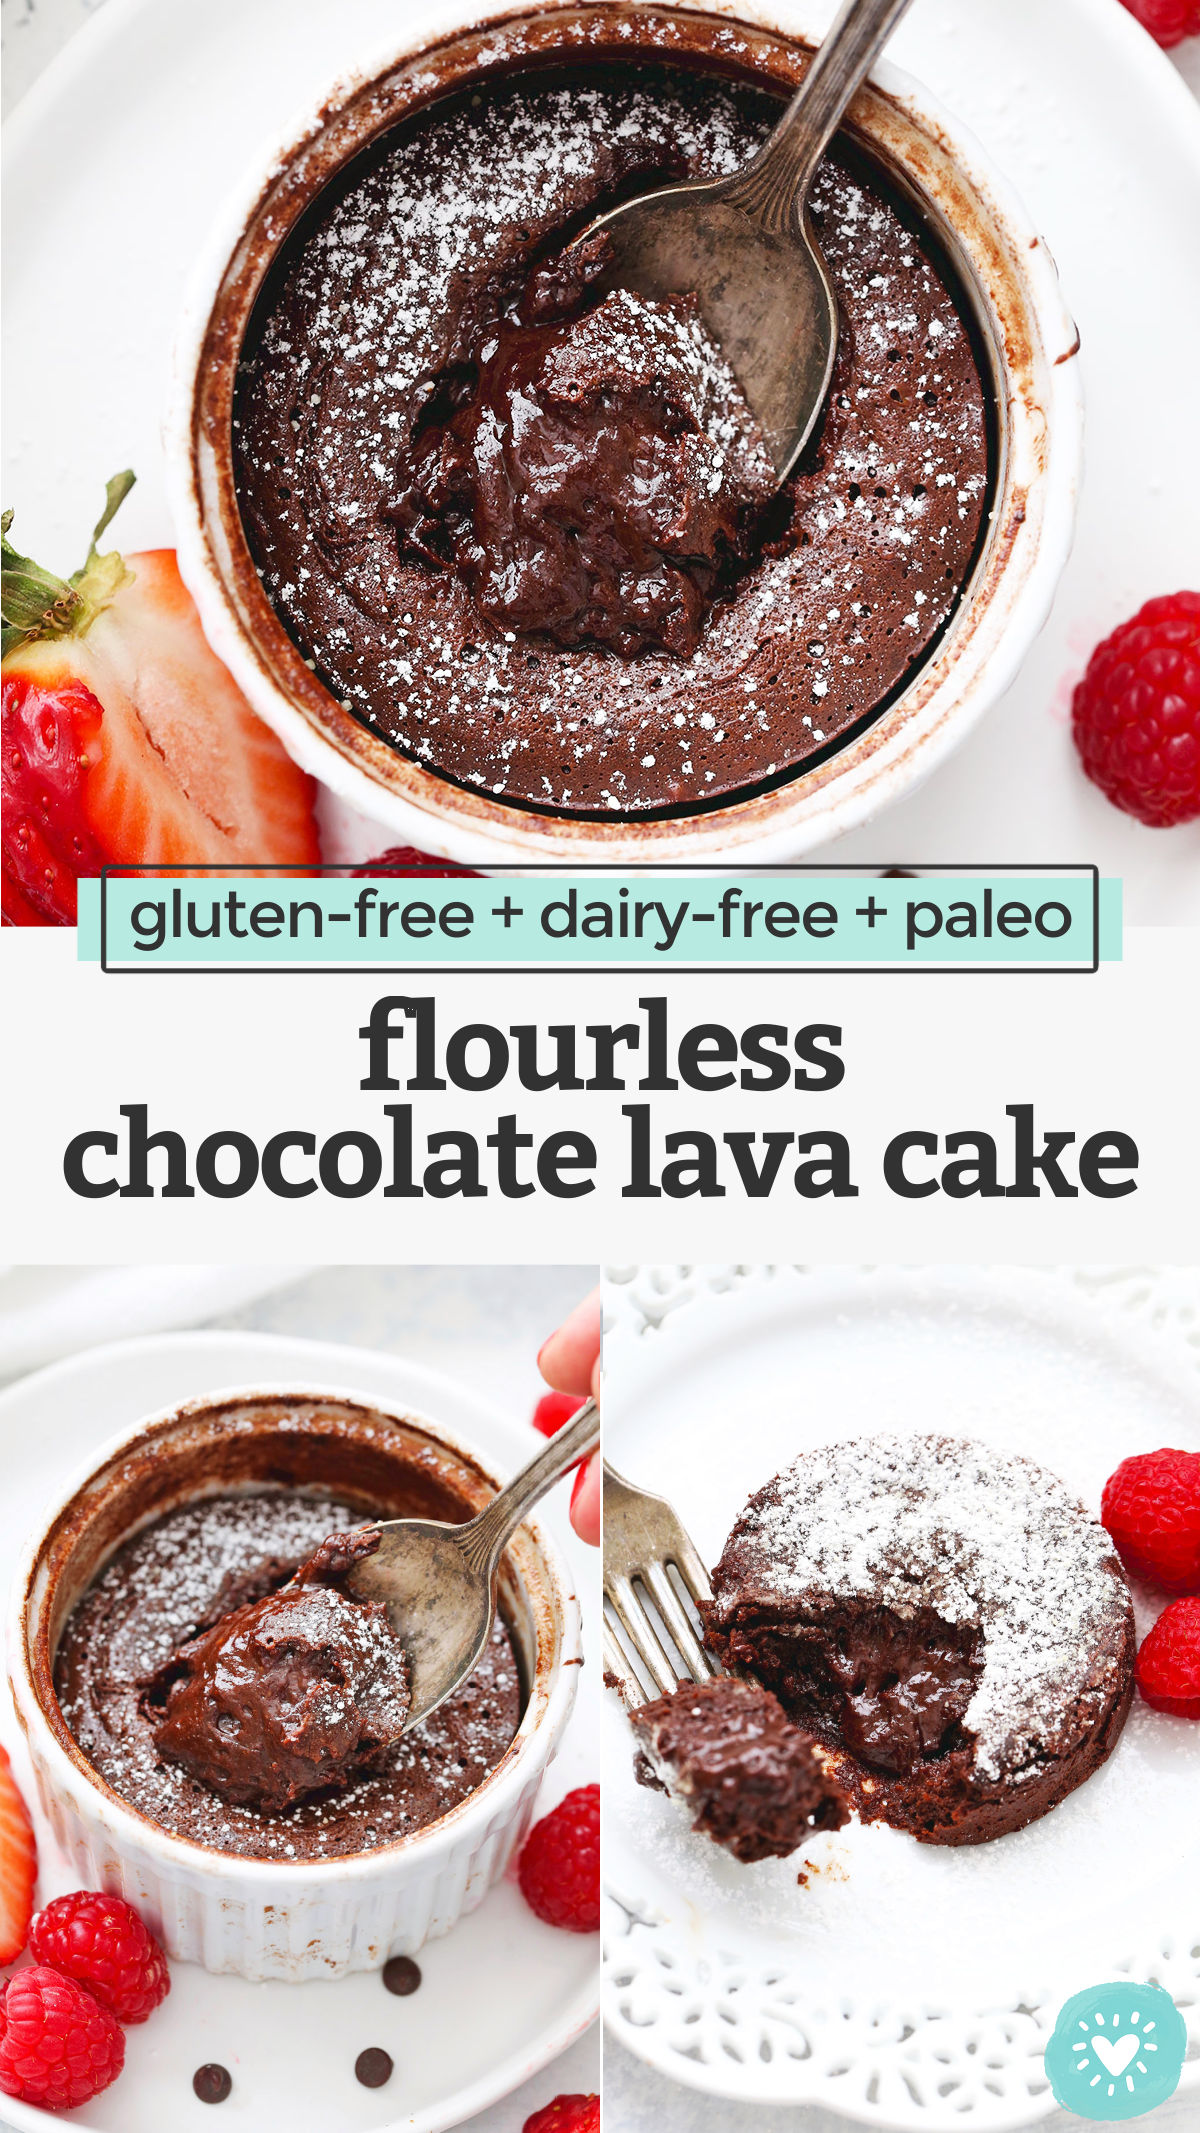 Paleo Chocolate Lava Cake - Super fudgy with a gooey molten chocolate filling, this flourless chocolate lava cake makes a perfect special occasion dessert! (Dairy-free, gluten-free, paleo) // Gluten Free Lava Cake // Paleo Lava Cake // dairy free lava cake #lavacake #chocolate #chocolatecake #paleo #glutenfree #flourless